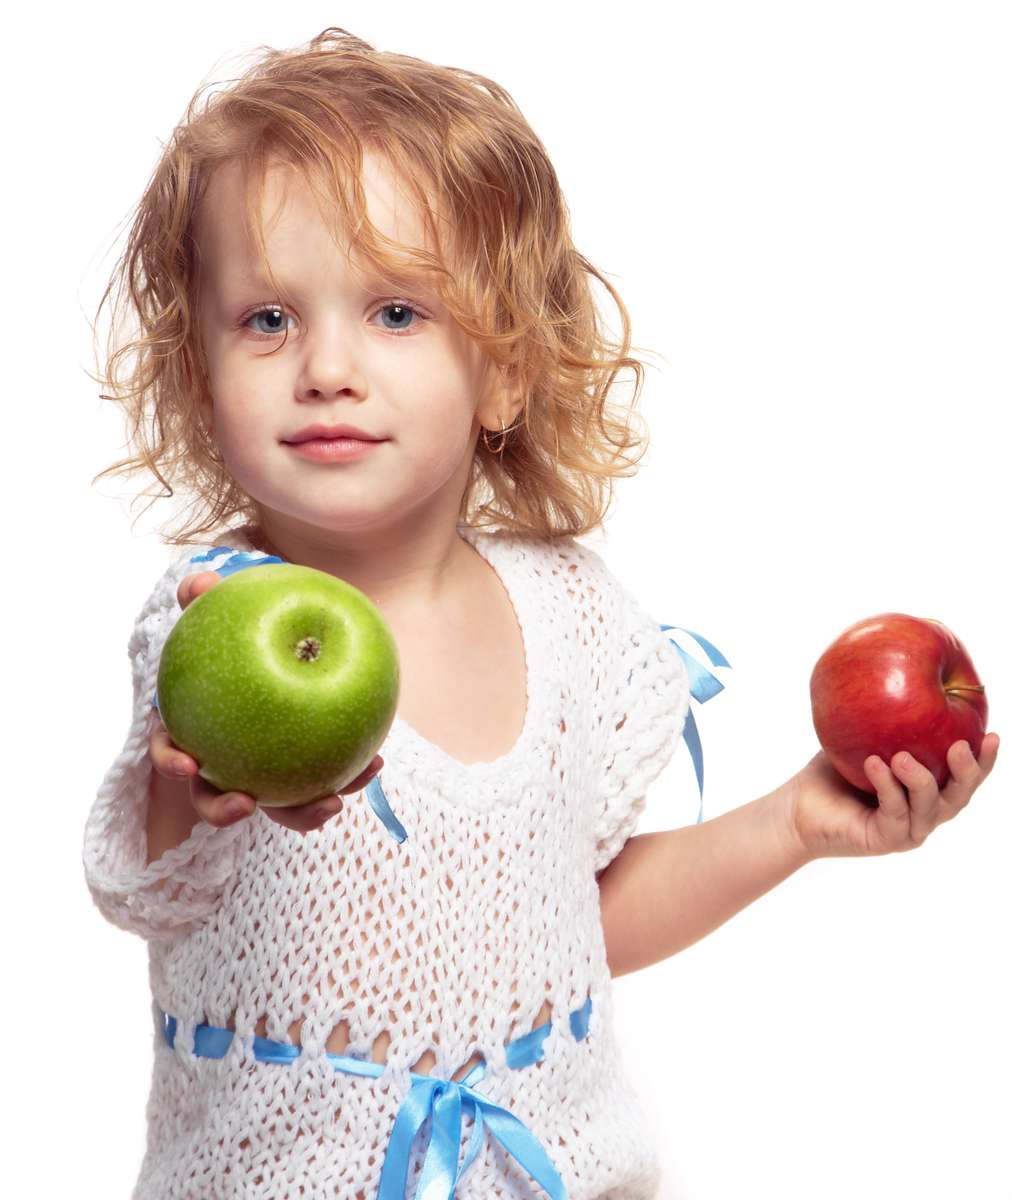 child holding two apples out as if offering them to someone